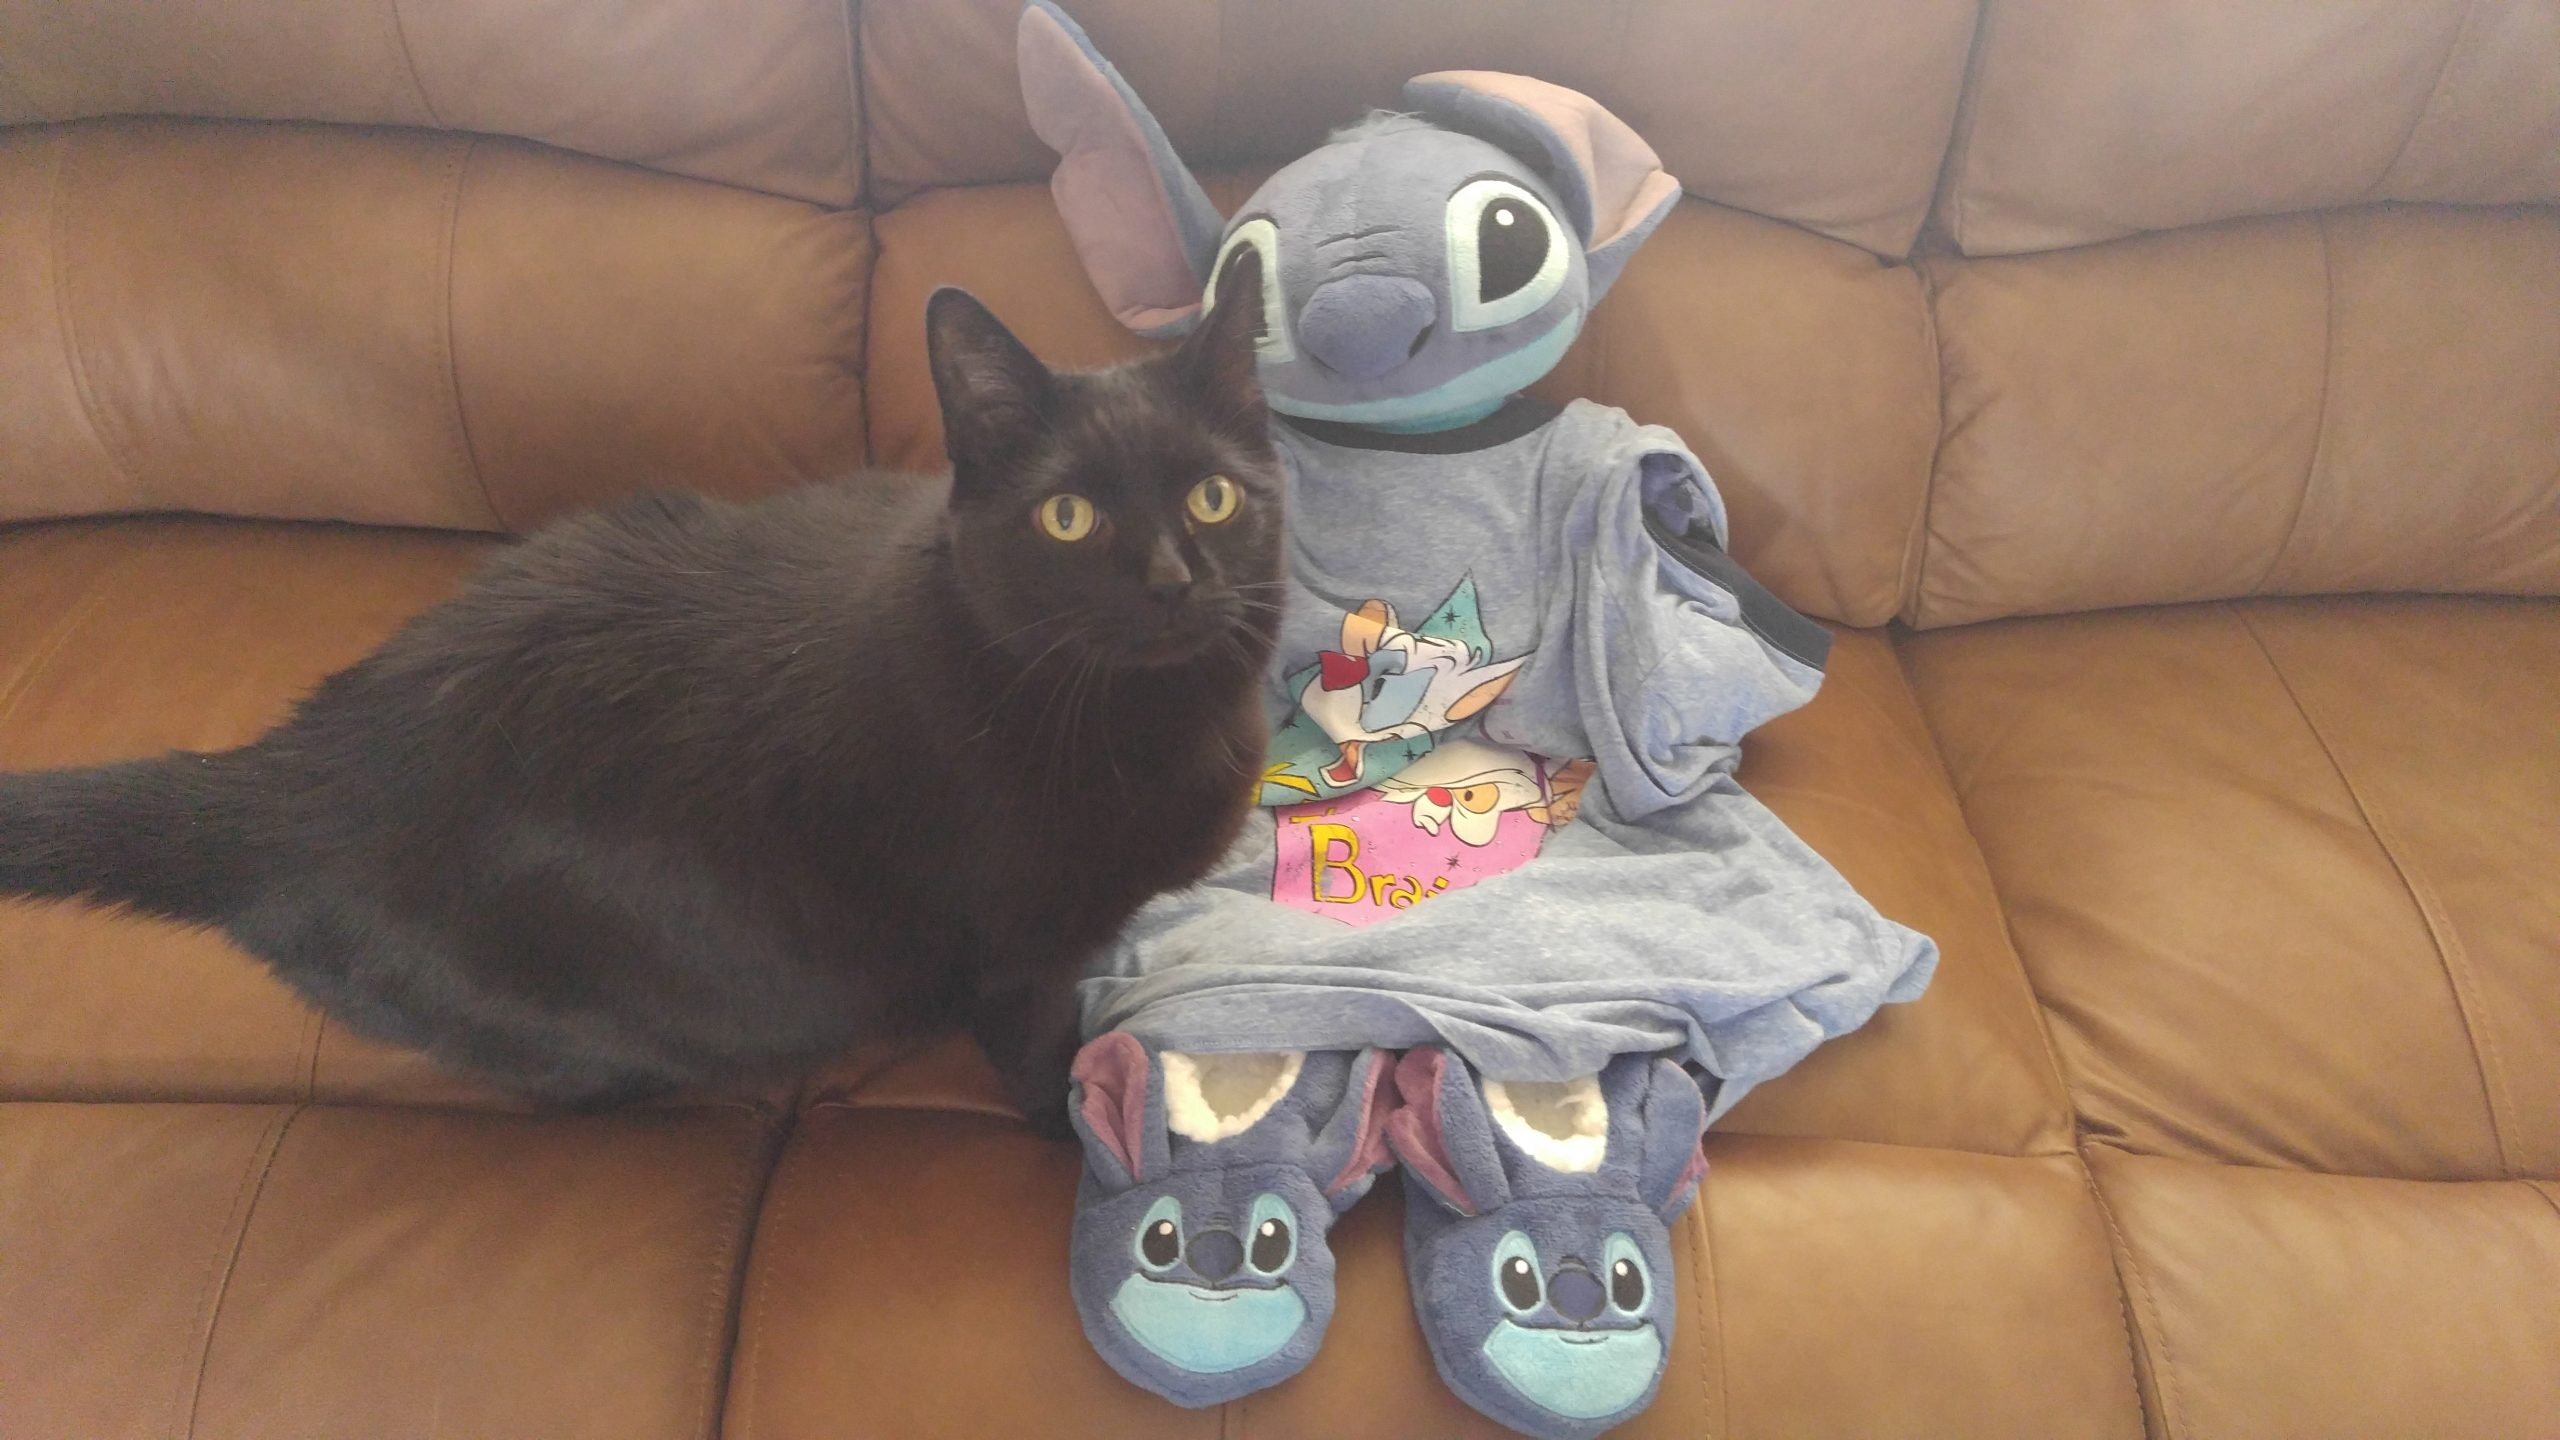 Low Maintenance Pets image of Eddie the cat and Stitch